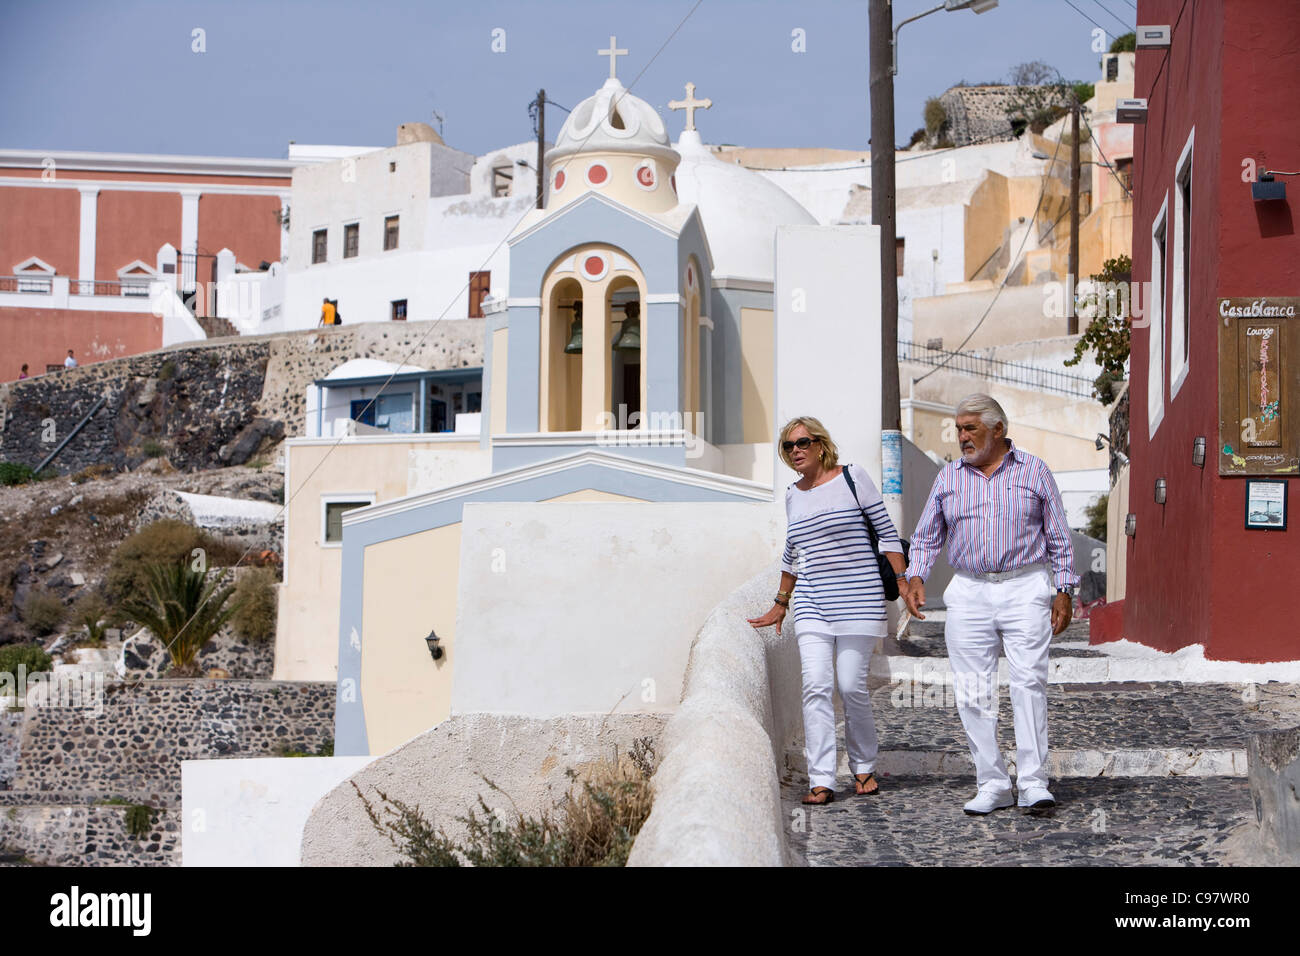 Actor Mario Adorf takes a stroll with wife Monique Adorf (on the occasion of shooting for ARD Degeto-Mona Film Production) - Stock Image